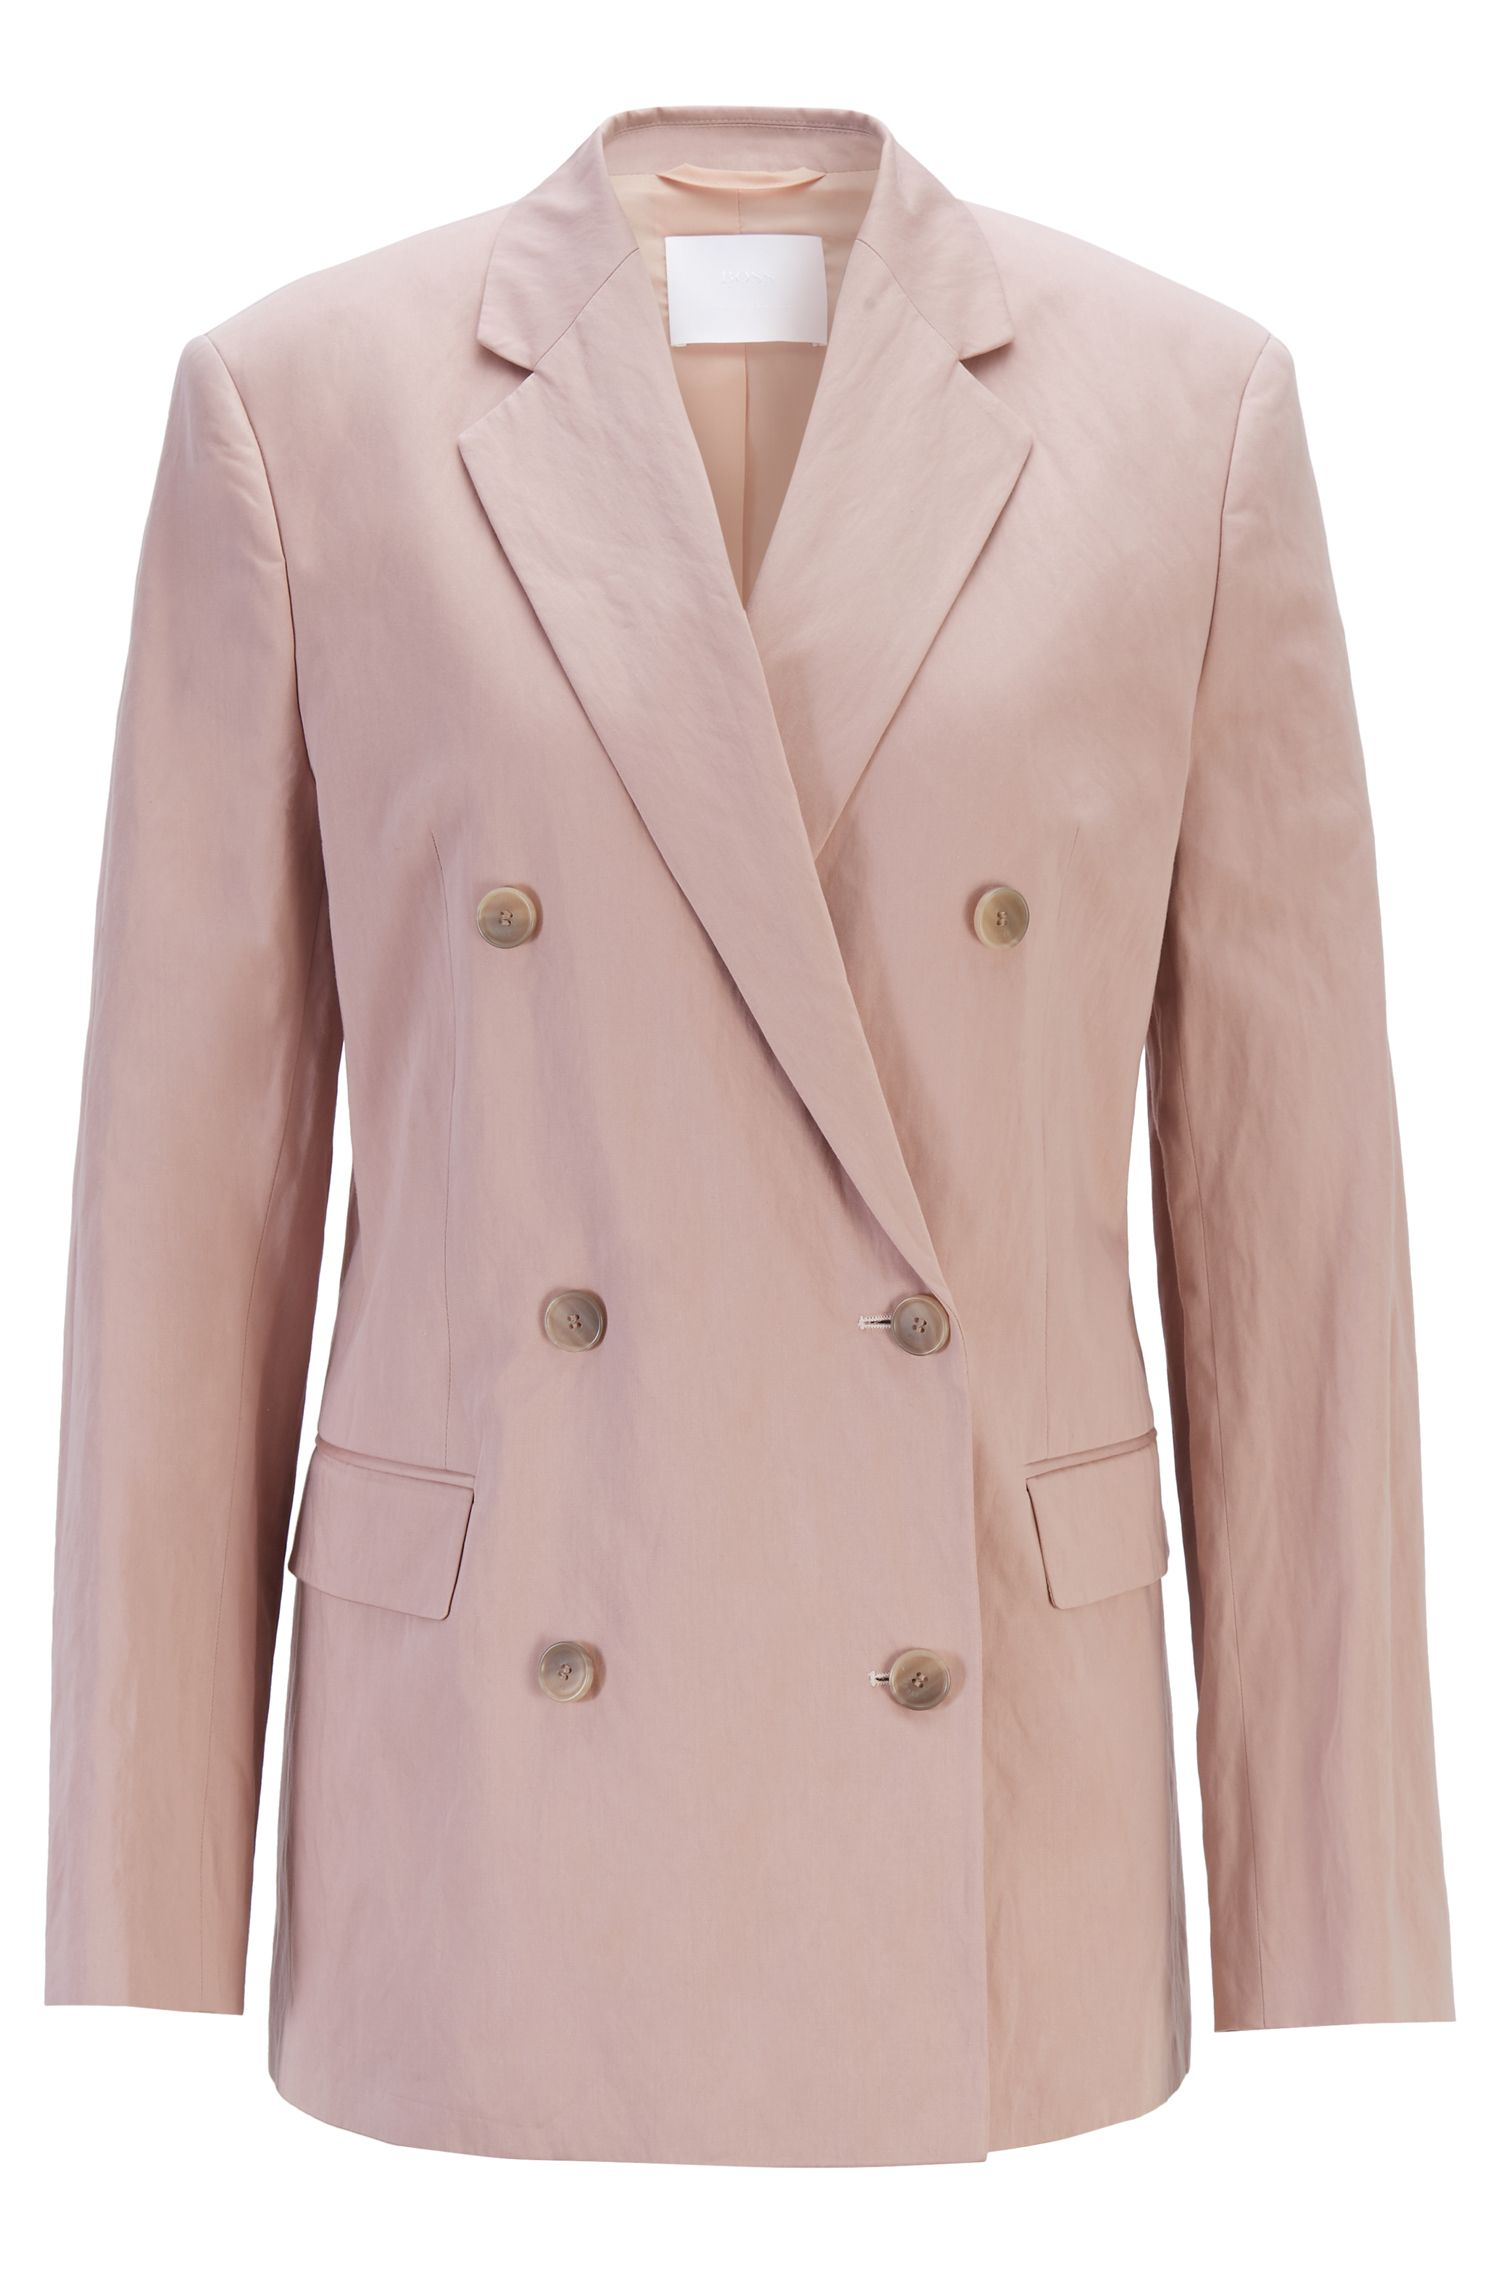 Fashion Show oversize-fit jacket in a lustrous cotton blend, light pink